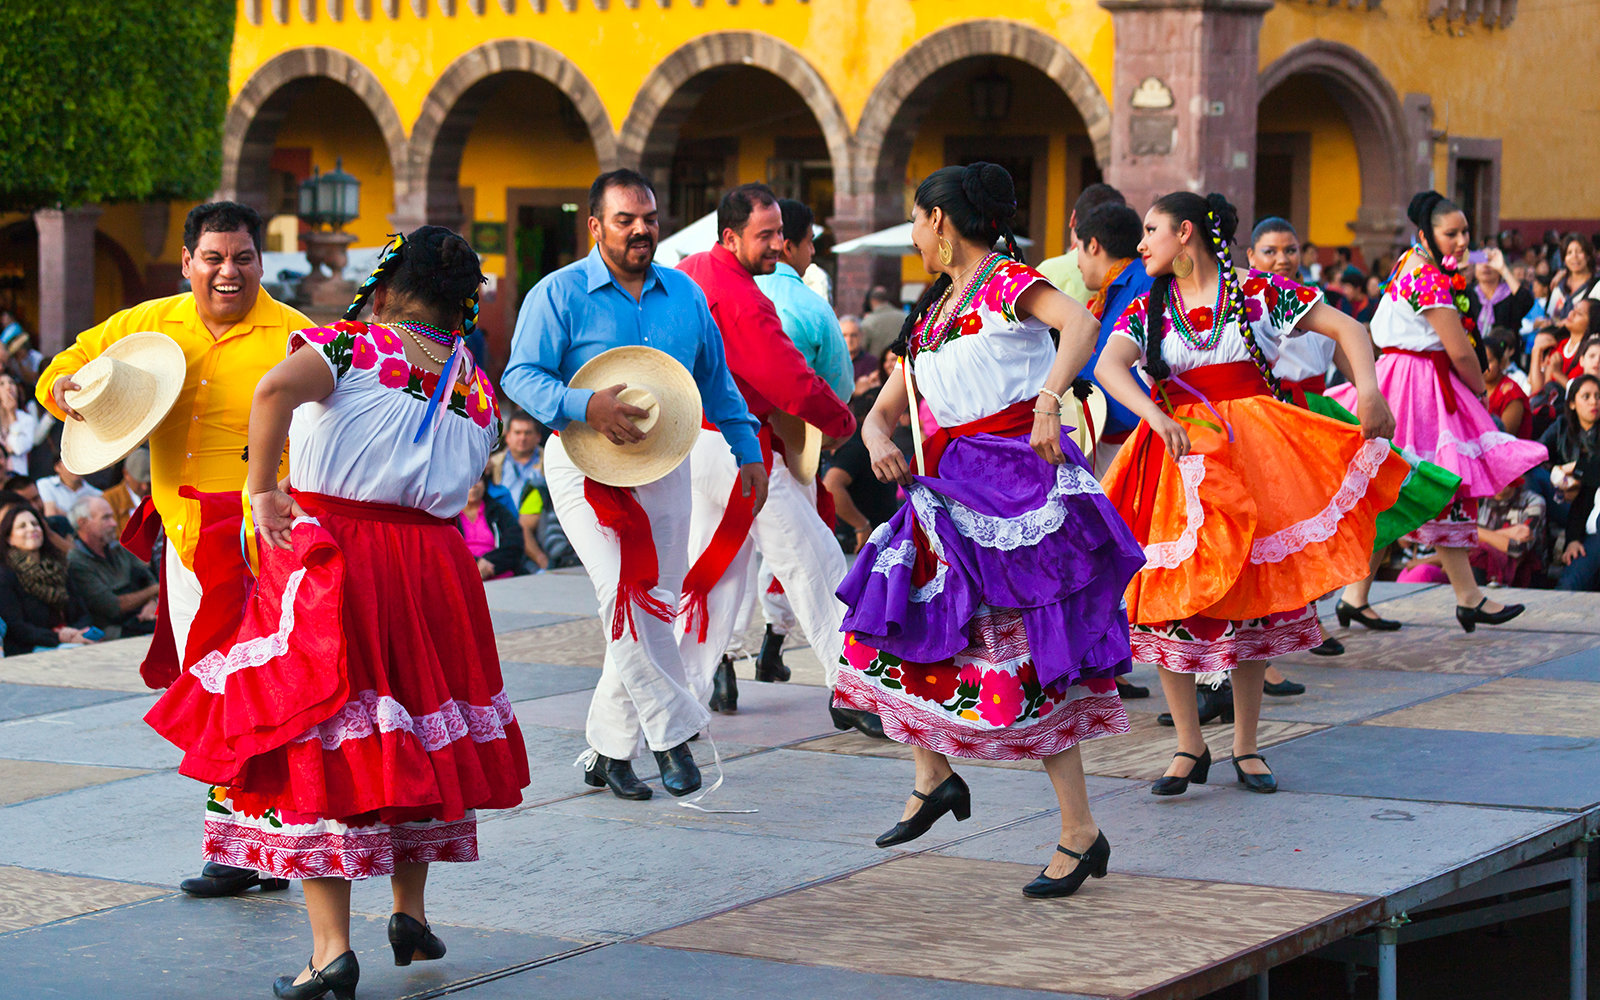 Dancers In The Jardin Or Central Square, San Miguel De Allende, Mexico